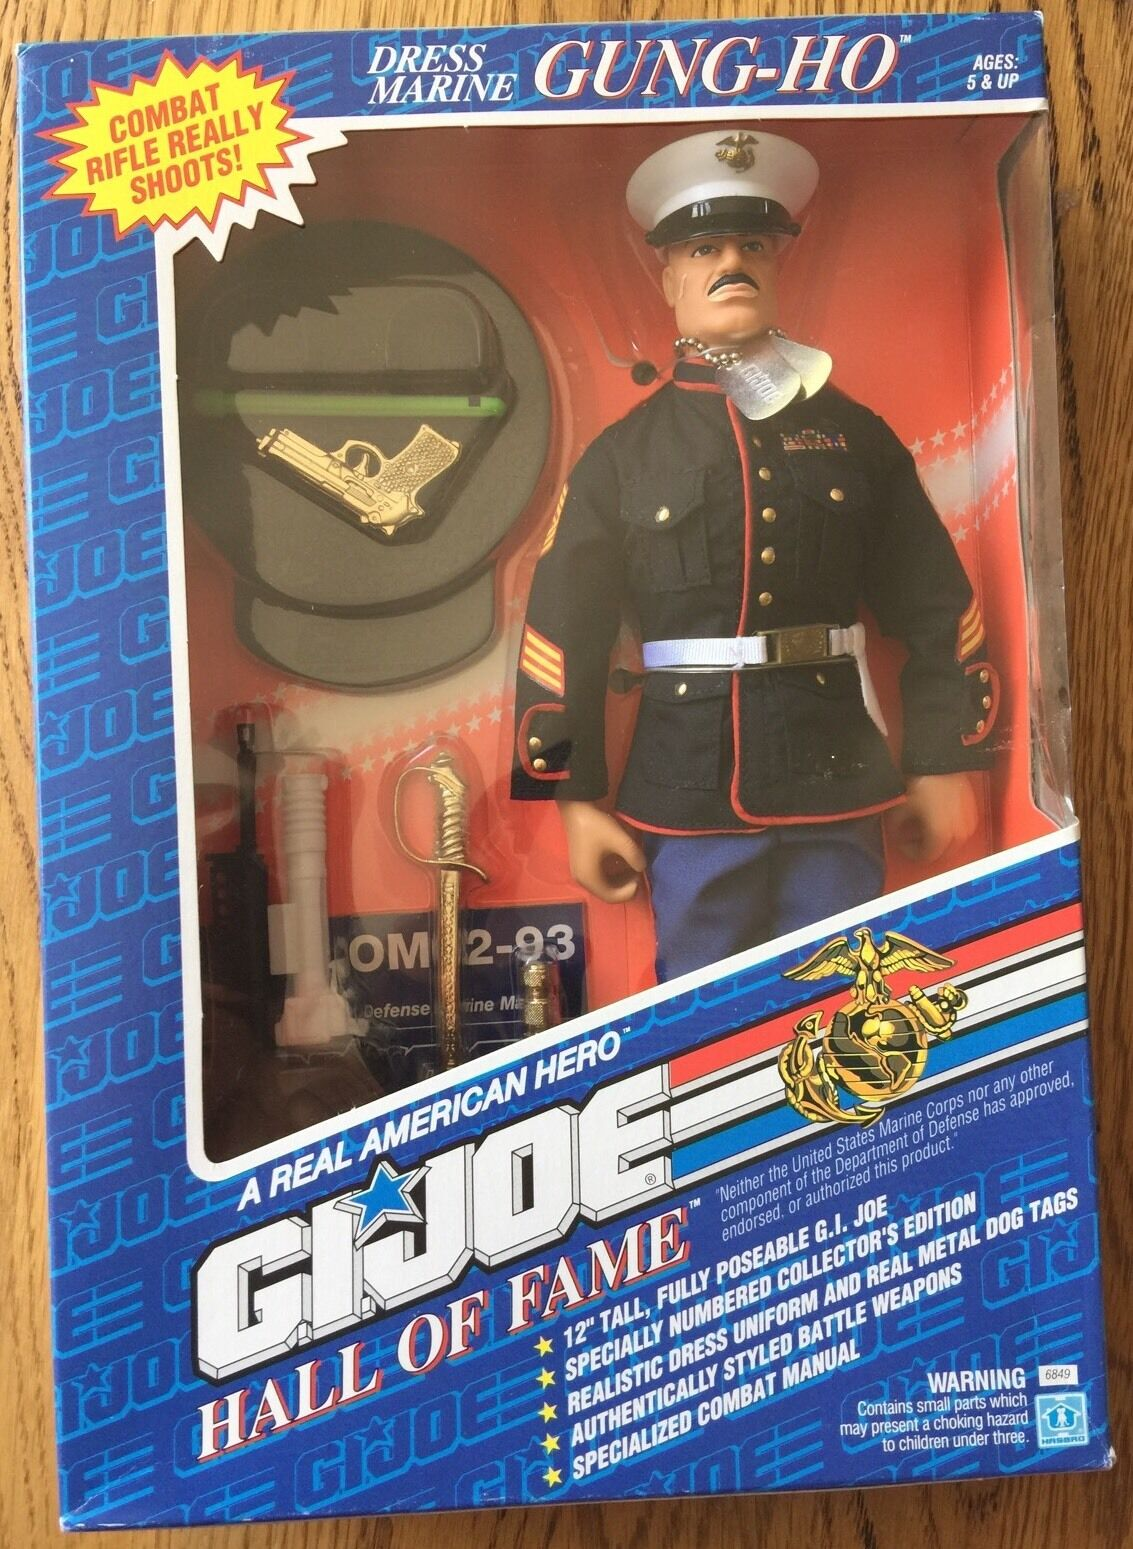 Hasbro Production Sample G.I. Joe Hall of Fame Dress Marine Gung-Ho gold Weapons